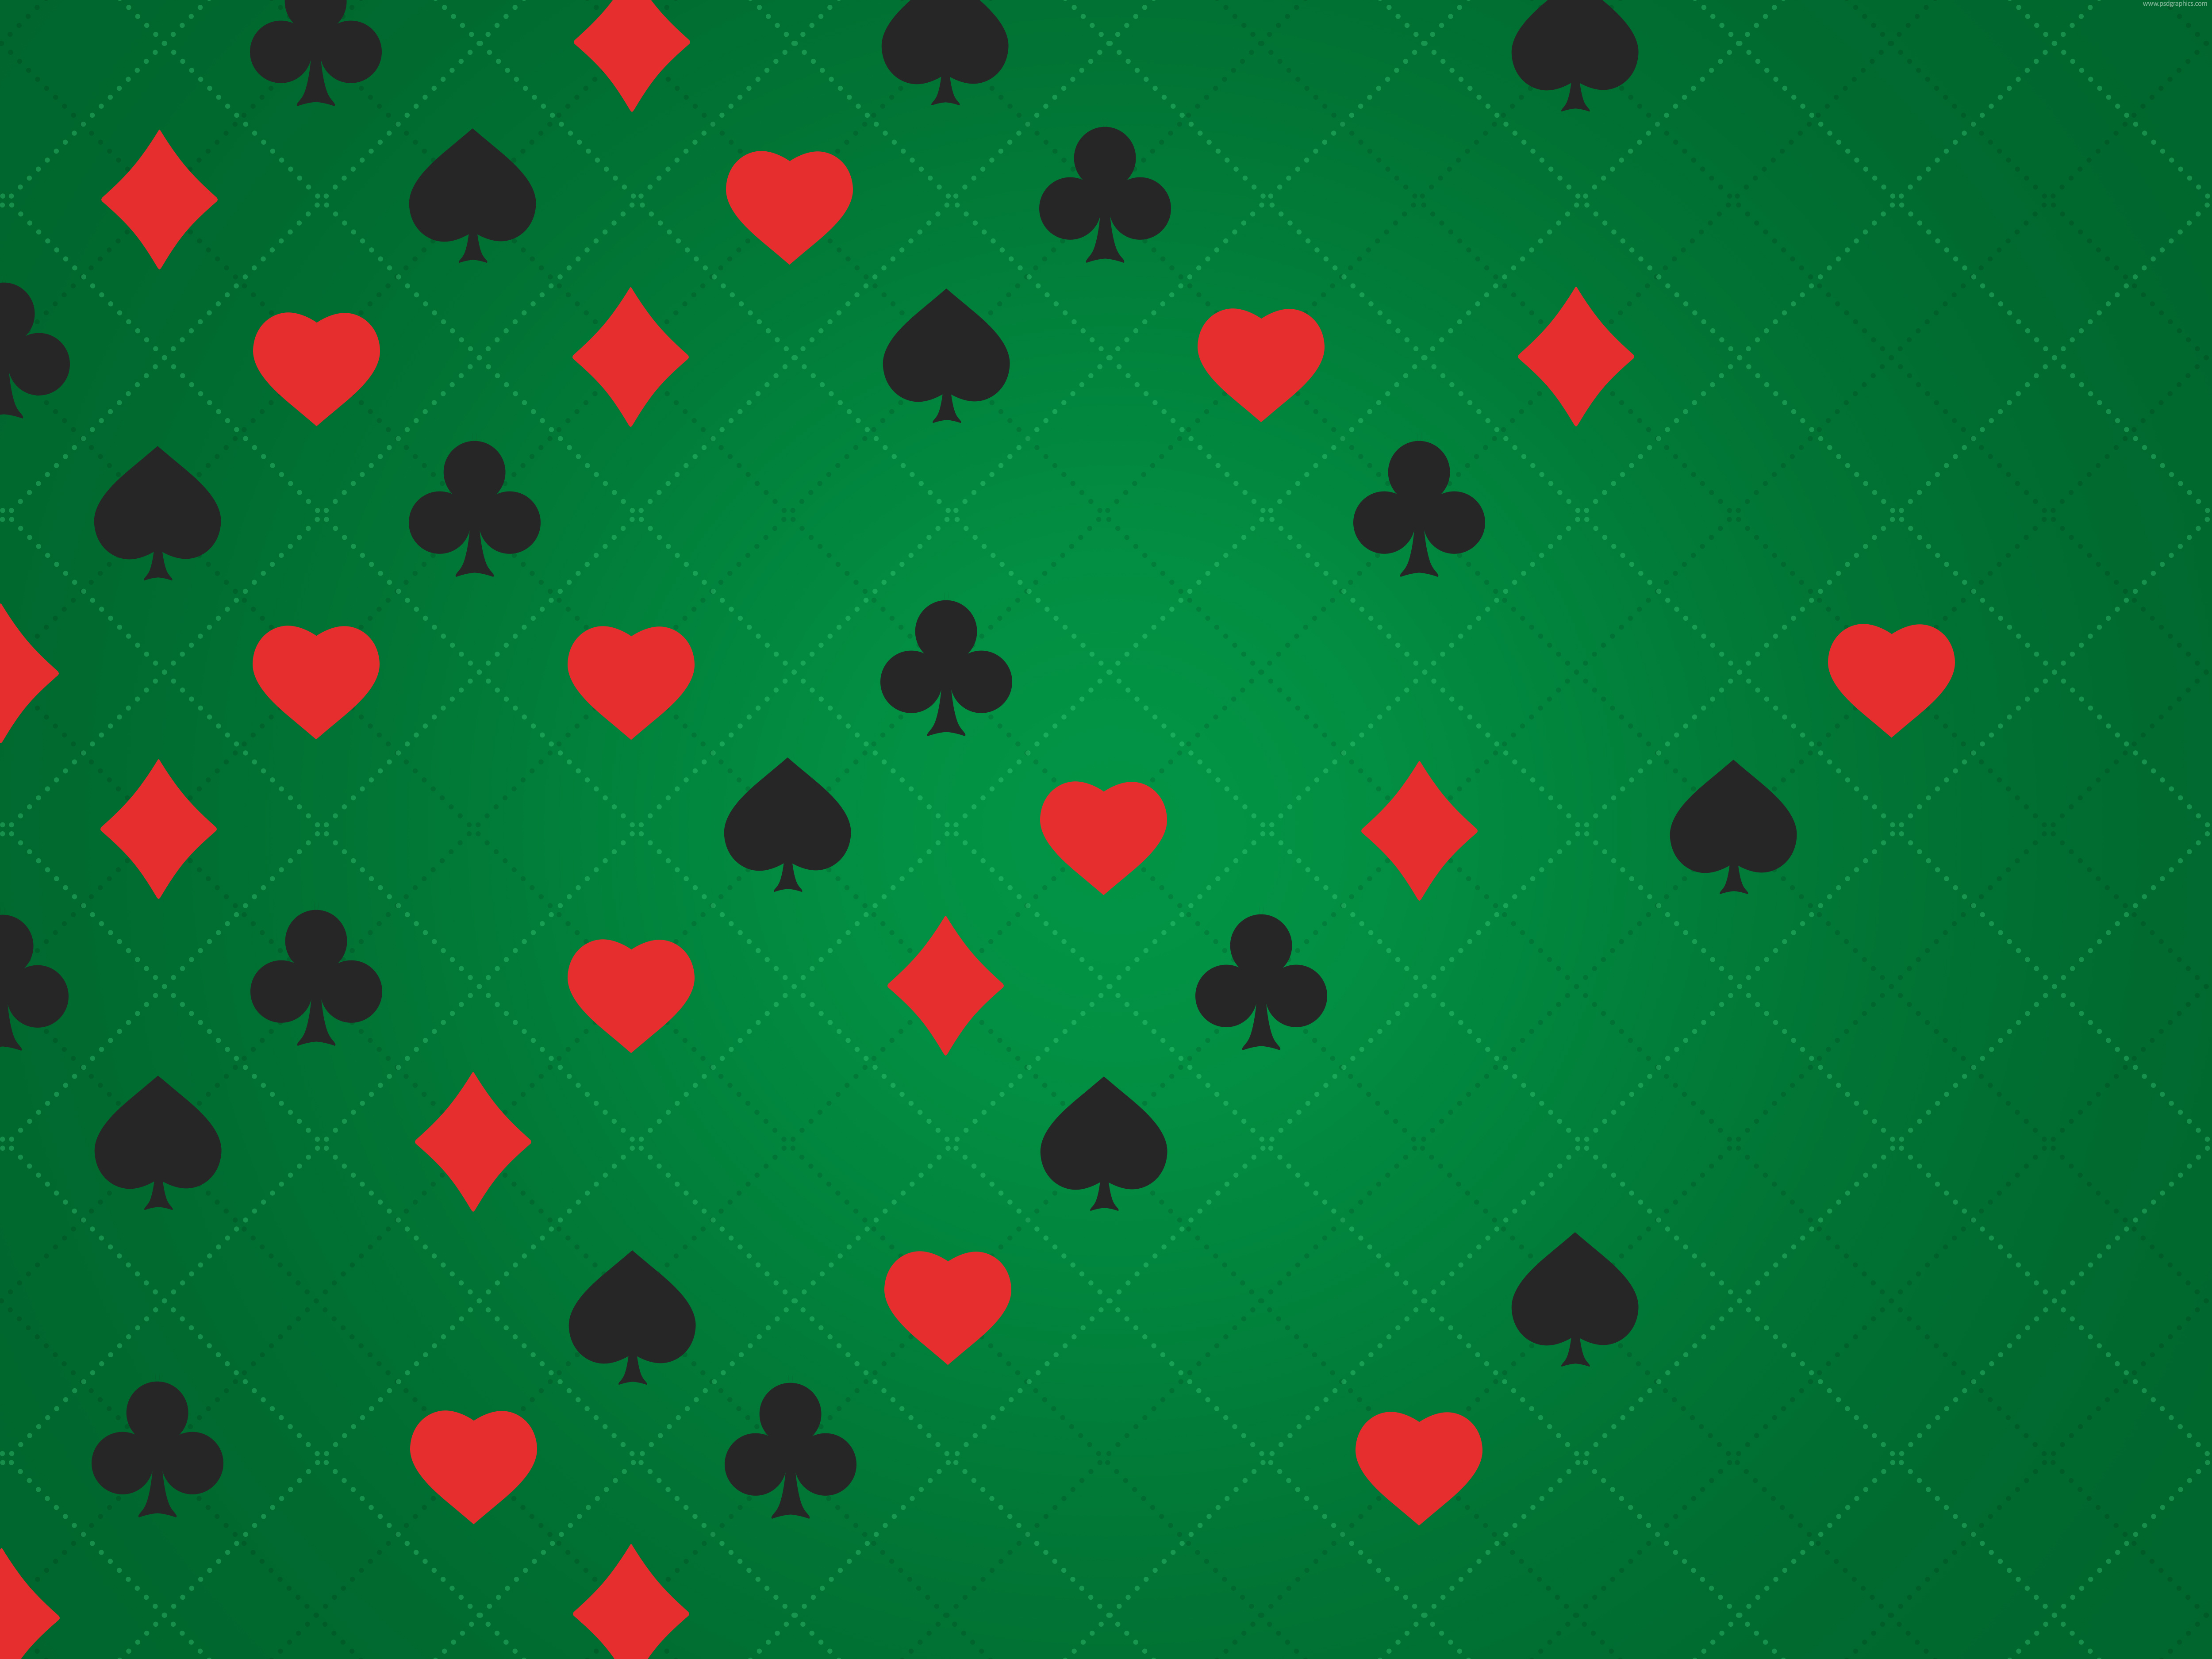 Photoshop casino pattern all playstation 2 games